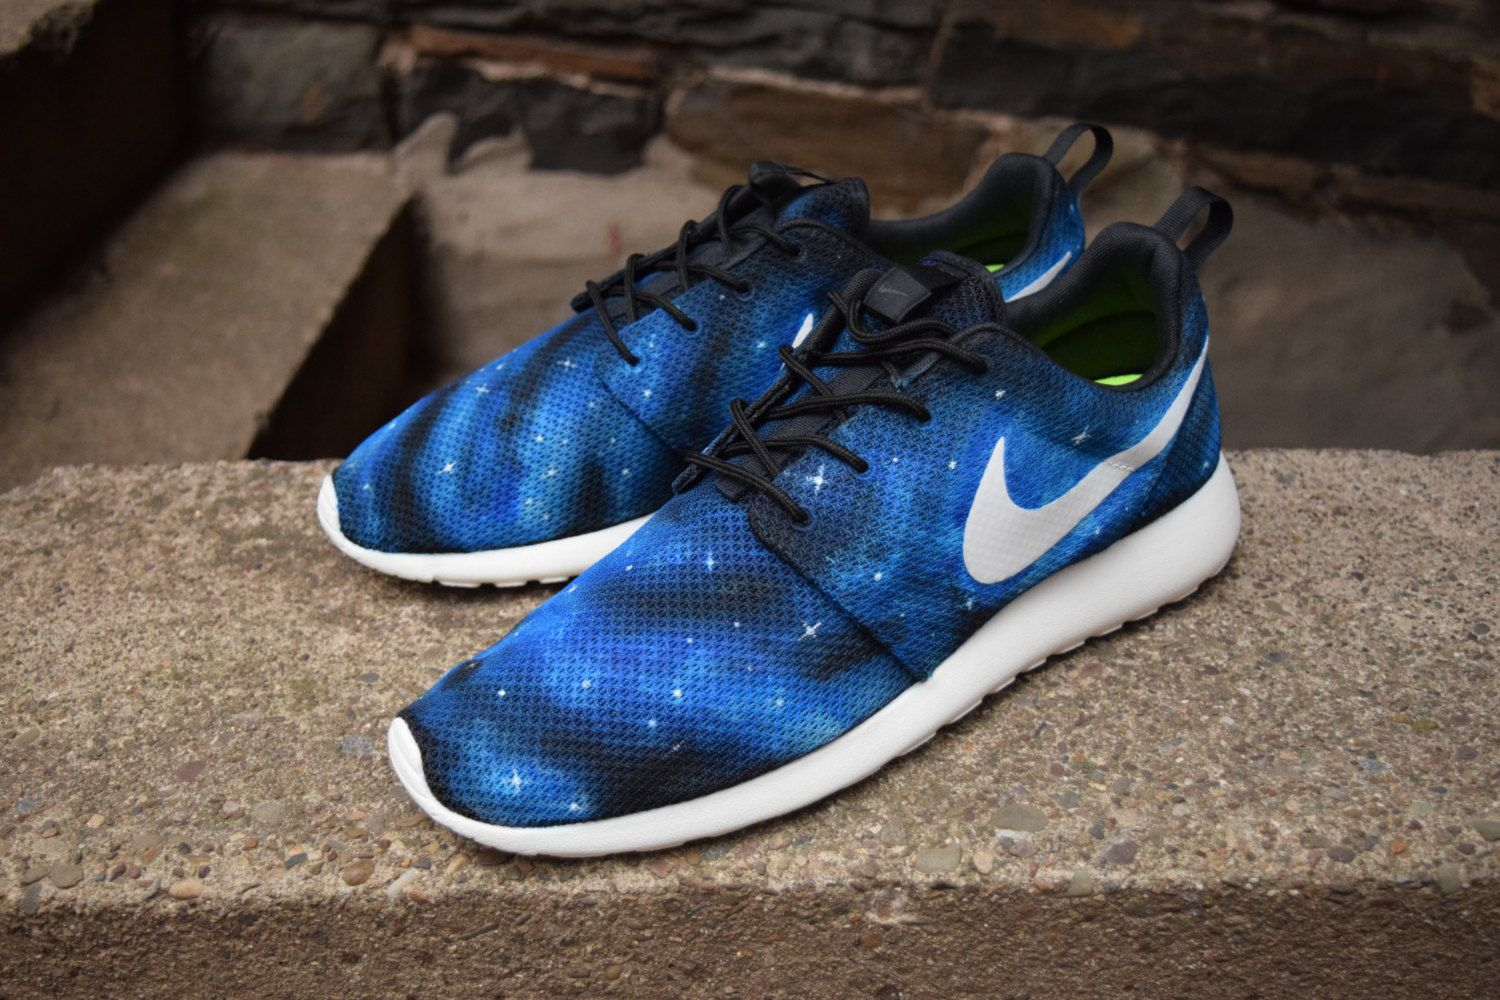 the best attitude 7c7ad 5cb2e Galaxy Nike Roshe Run Galaxy Shoes. Nike Roshe One. Galaxy Nike Roshes.  Blue galaxy, green galaxy etc! Nike sign will be BLACK Not Painted by  HJArtistry on ...